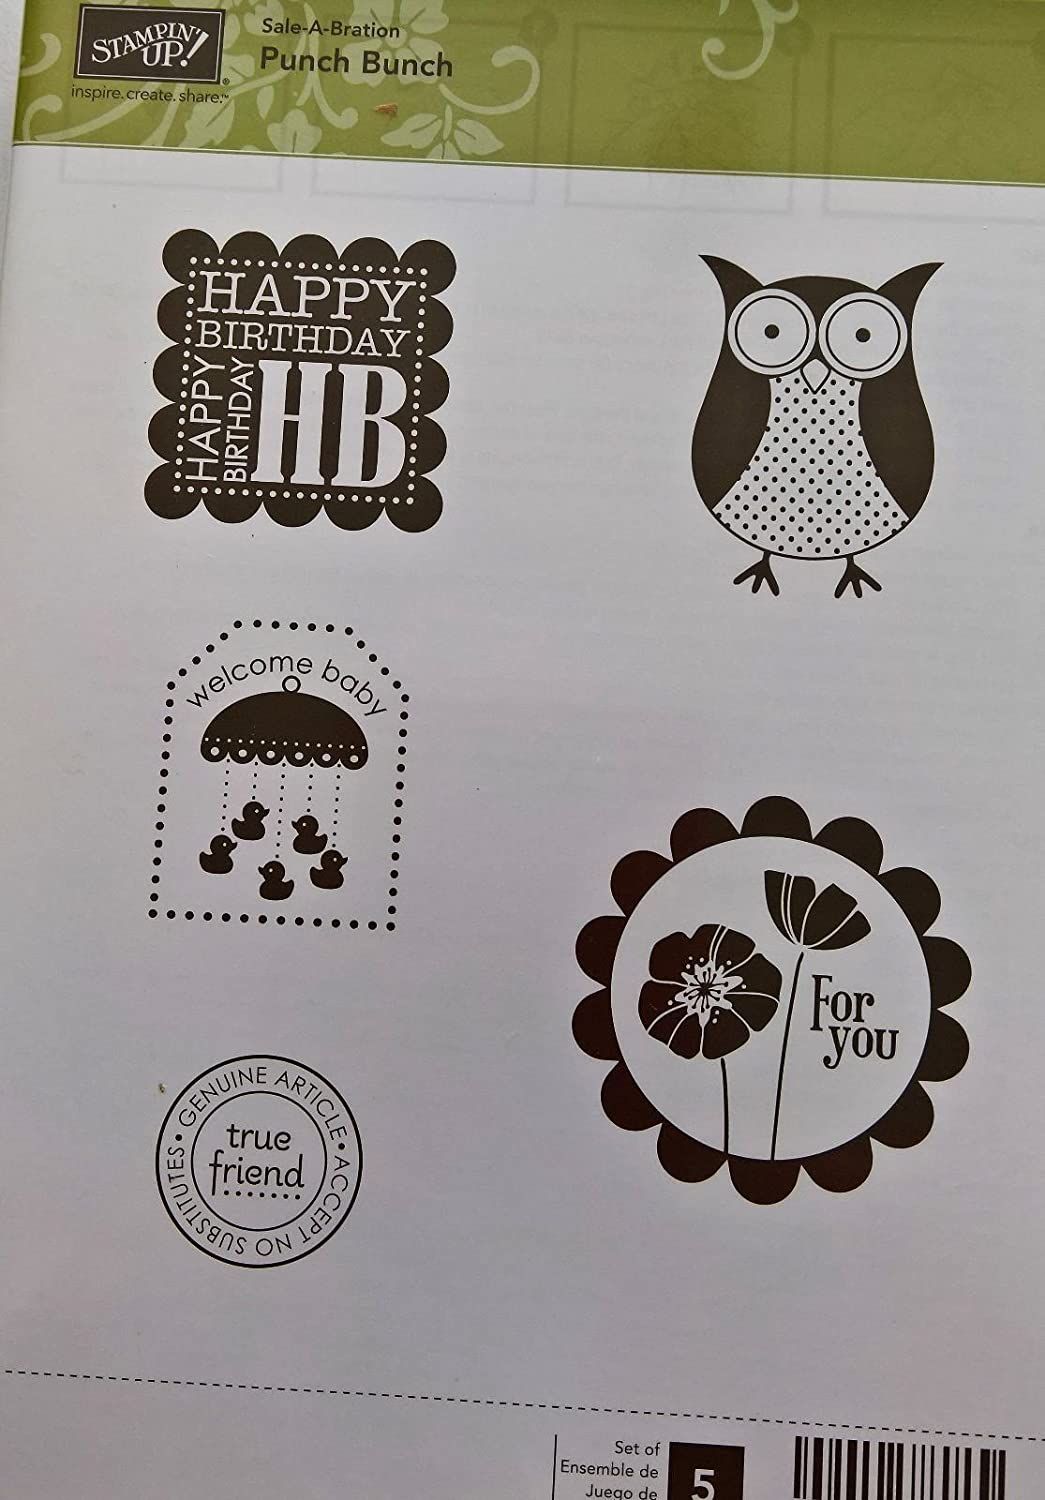 Punch Bunch Stampin Up!